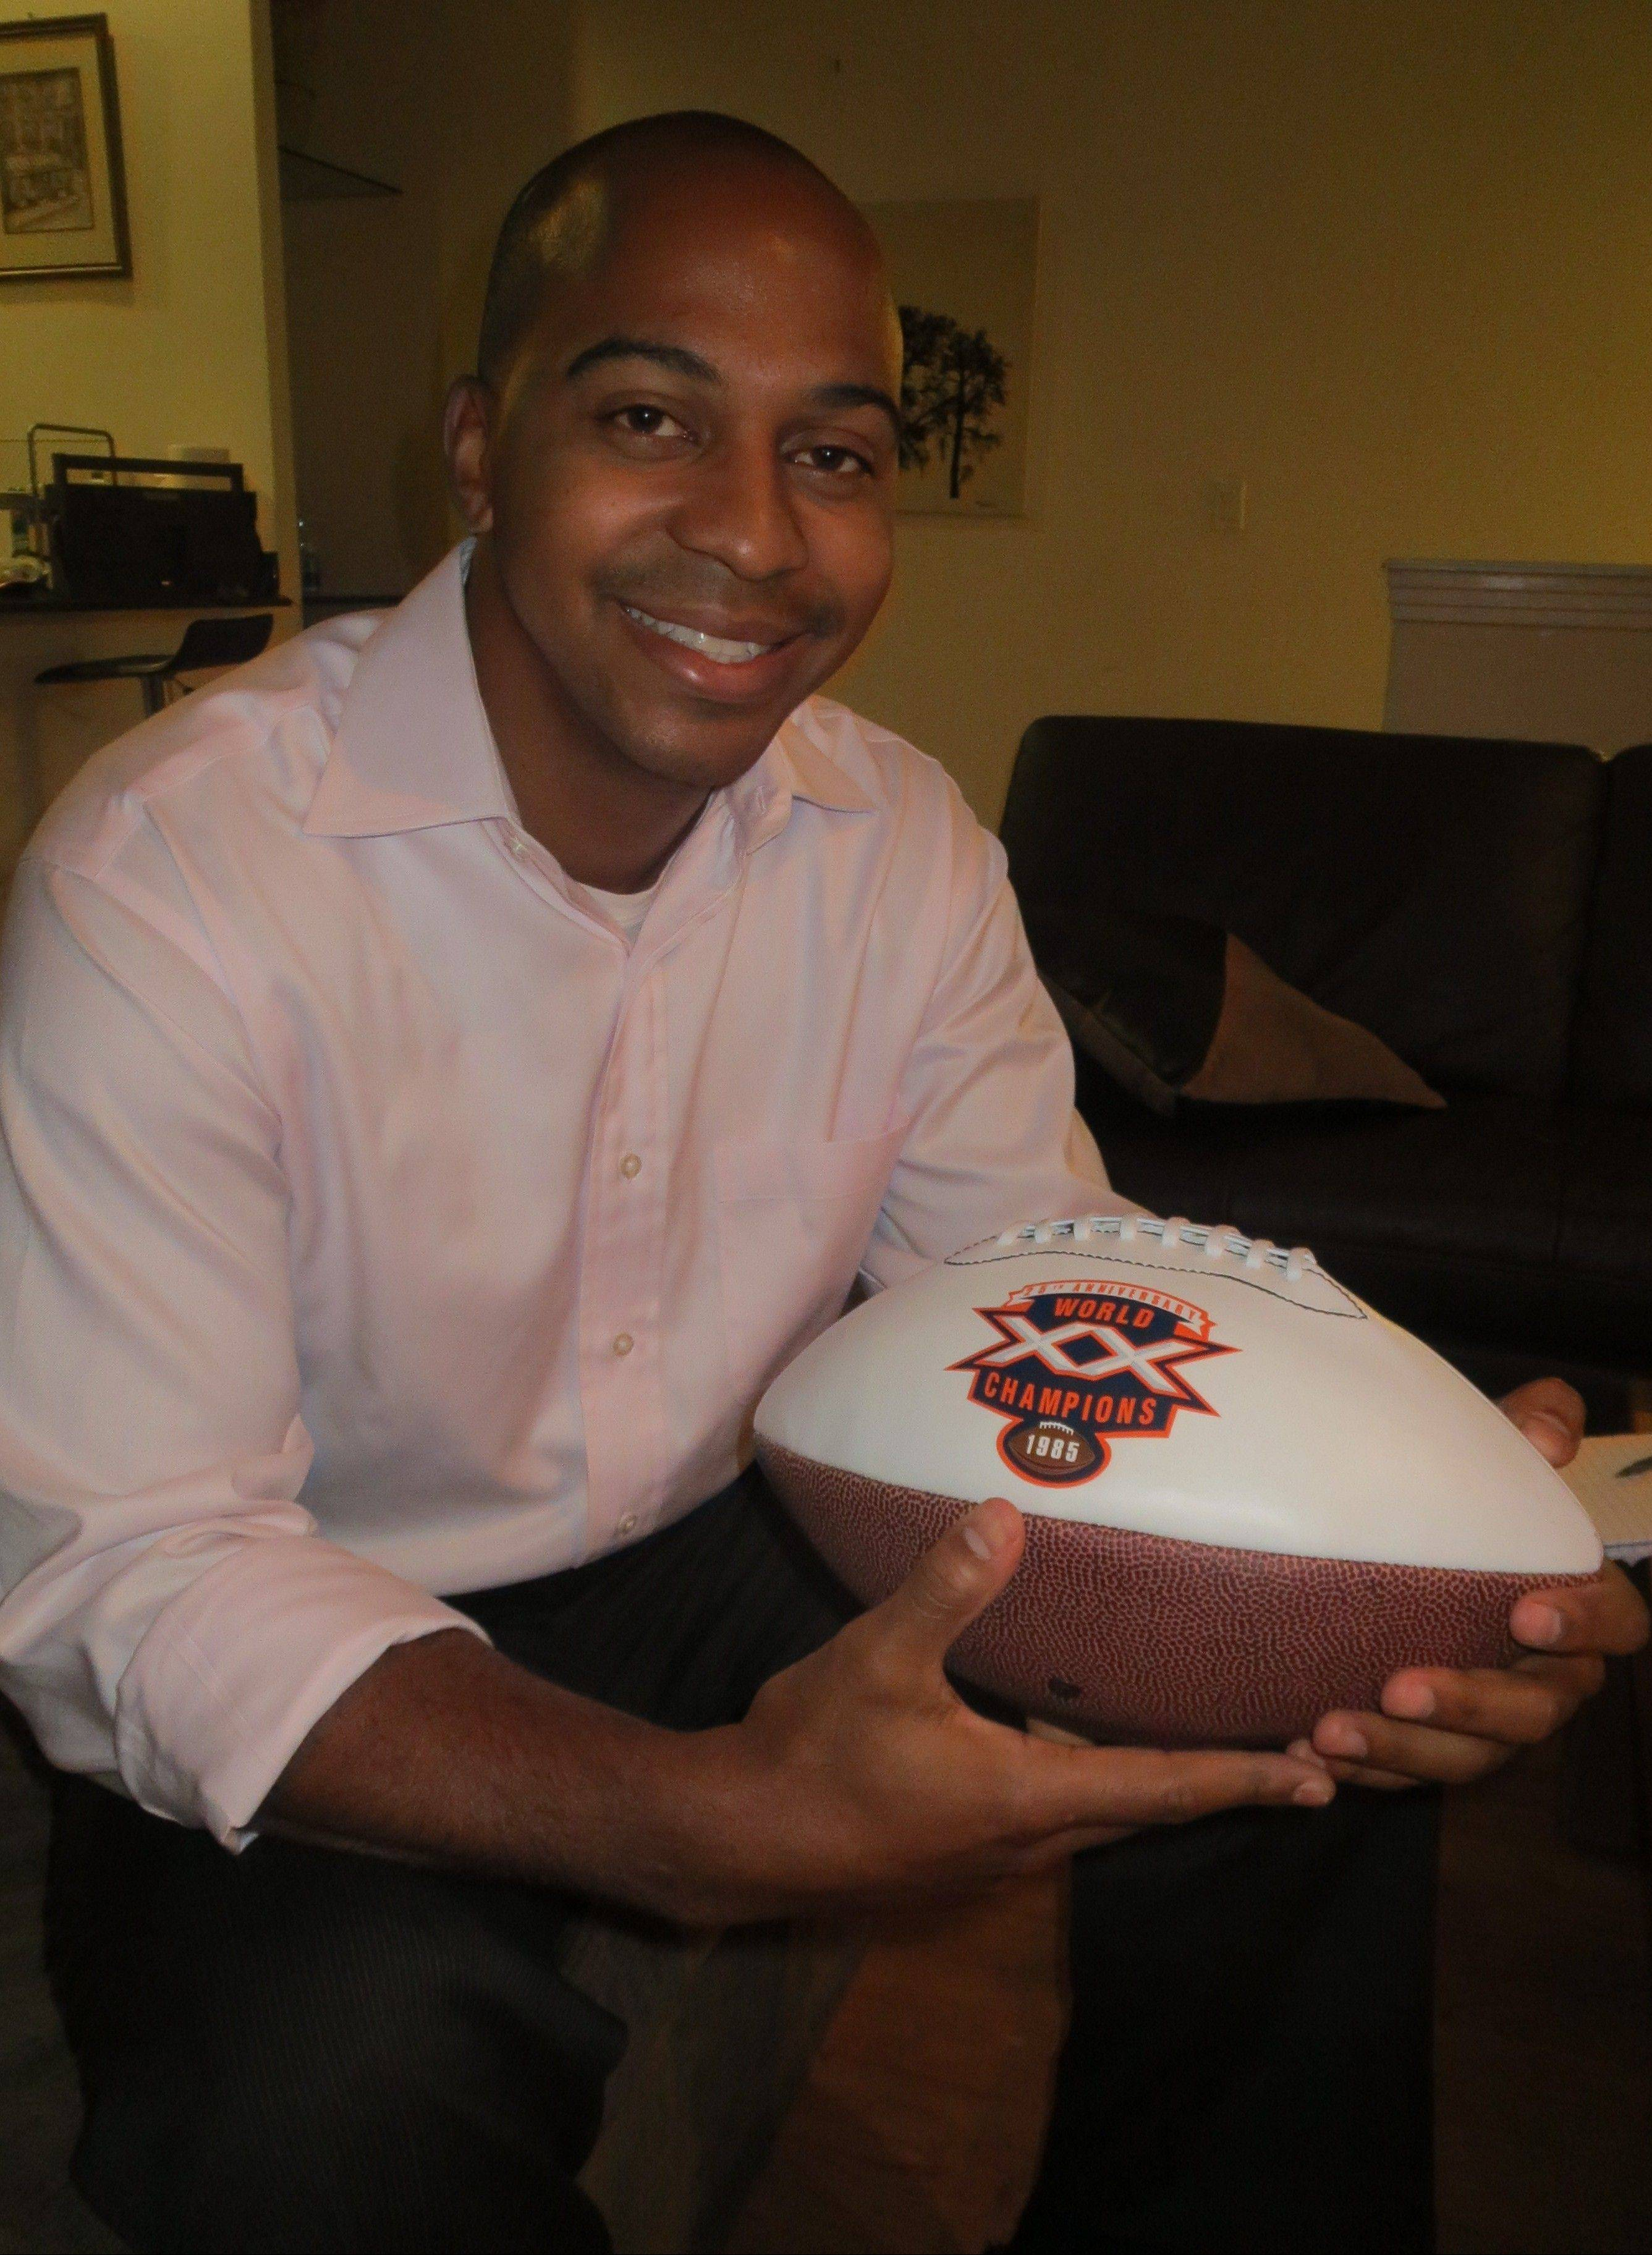 Born near the start of the glorious 1985 NFL season that saw the Chicago Bears roll to a Super Bowl title, Tregg Duerson has few memories of his dad's illustrious football career. But he does have this Super Bowl XX commemorative football and other memorabilia from Dave Duerson's playing days.